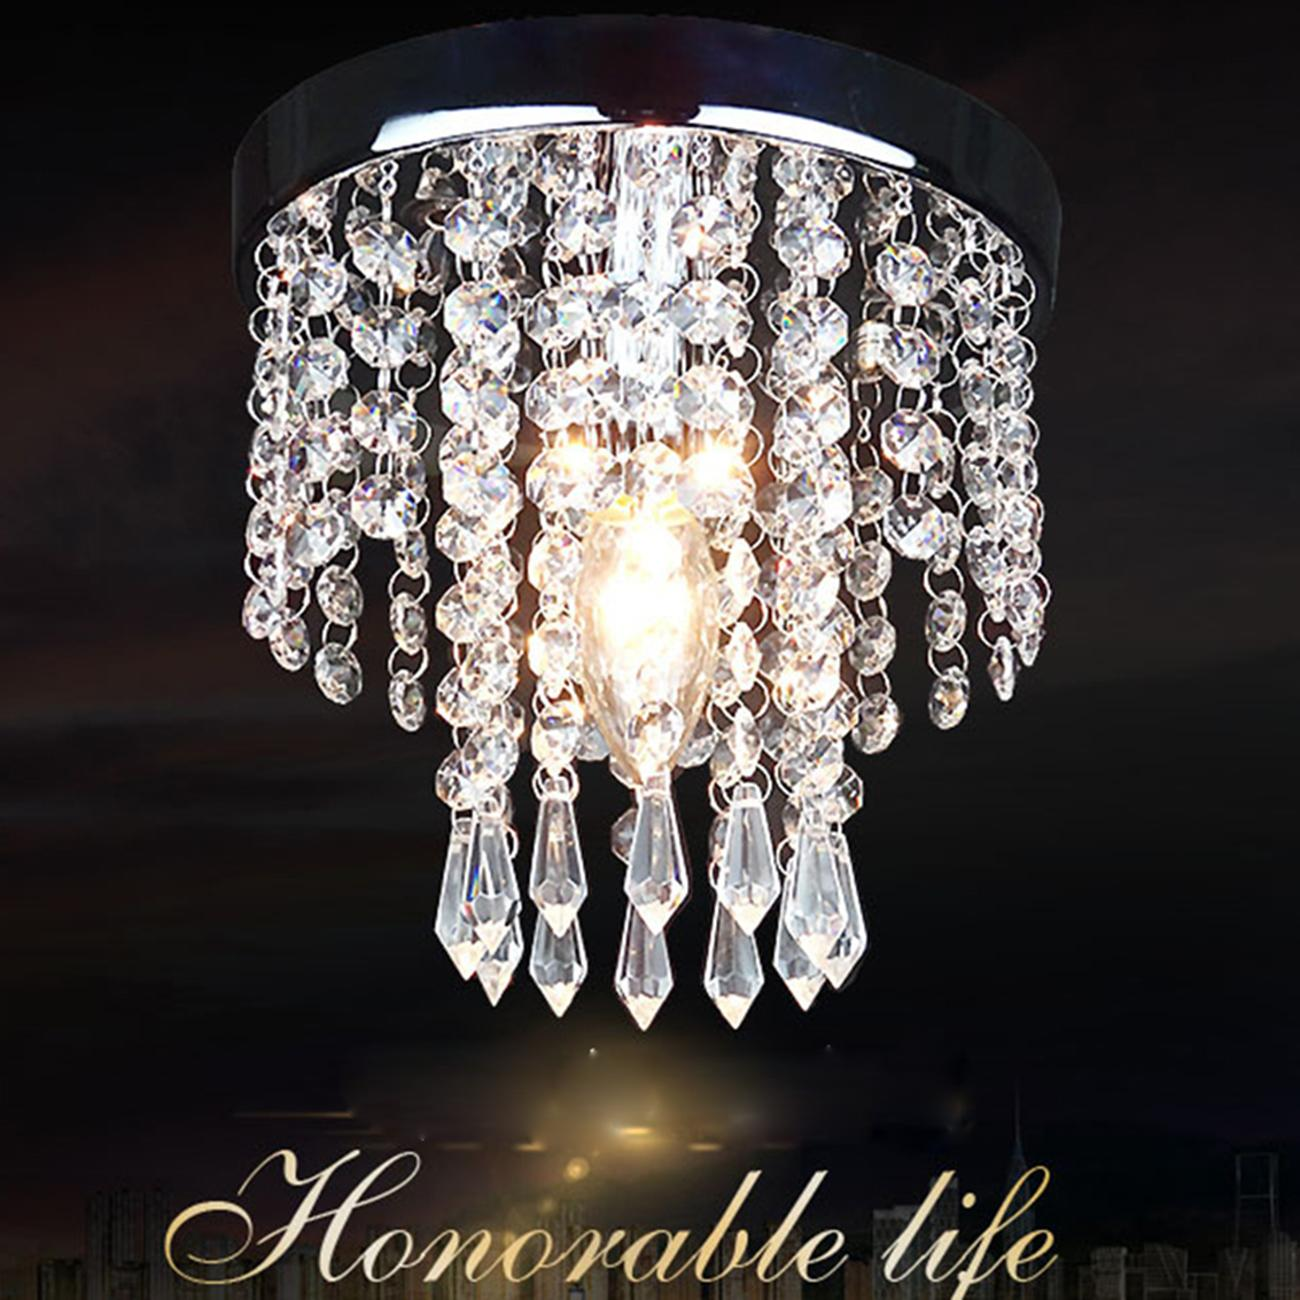 Details About Aisle Bedroom Crystal Chandelier Pendant Lamp Ceiling Light  Lighting Fixture